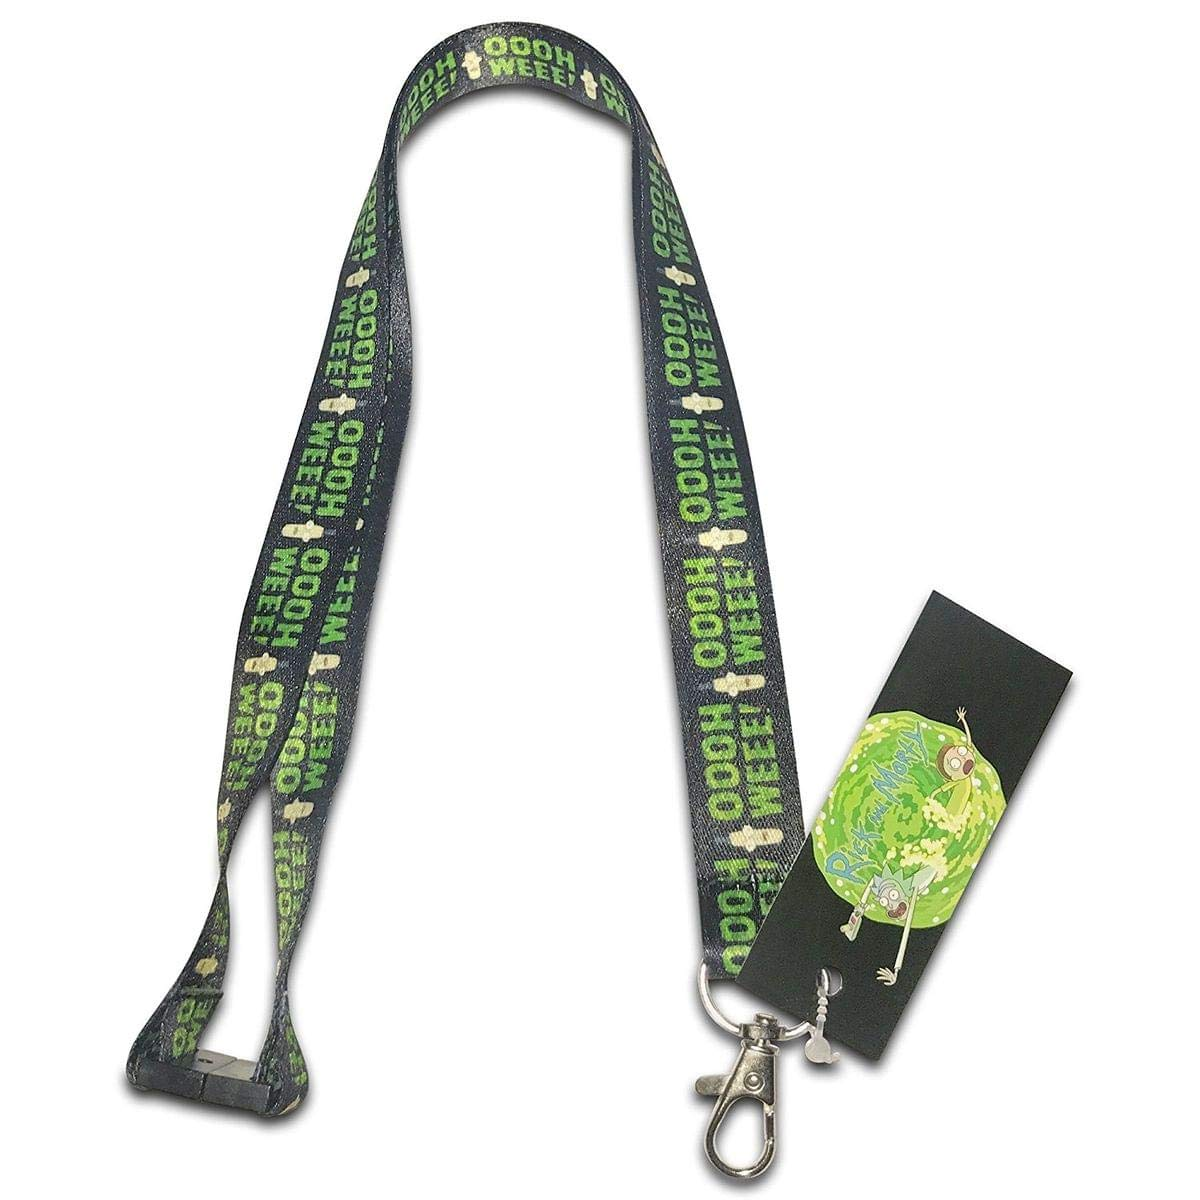 Rick and Morty Pickle Rick Breakaway Lanyard with Charm